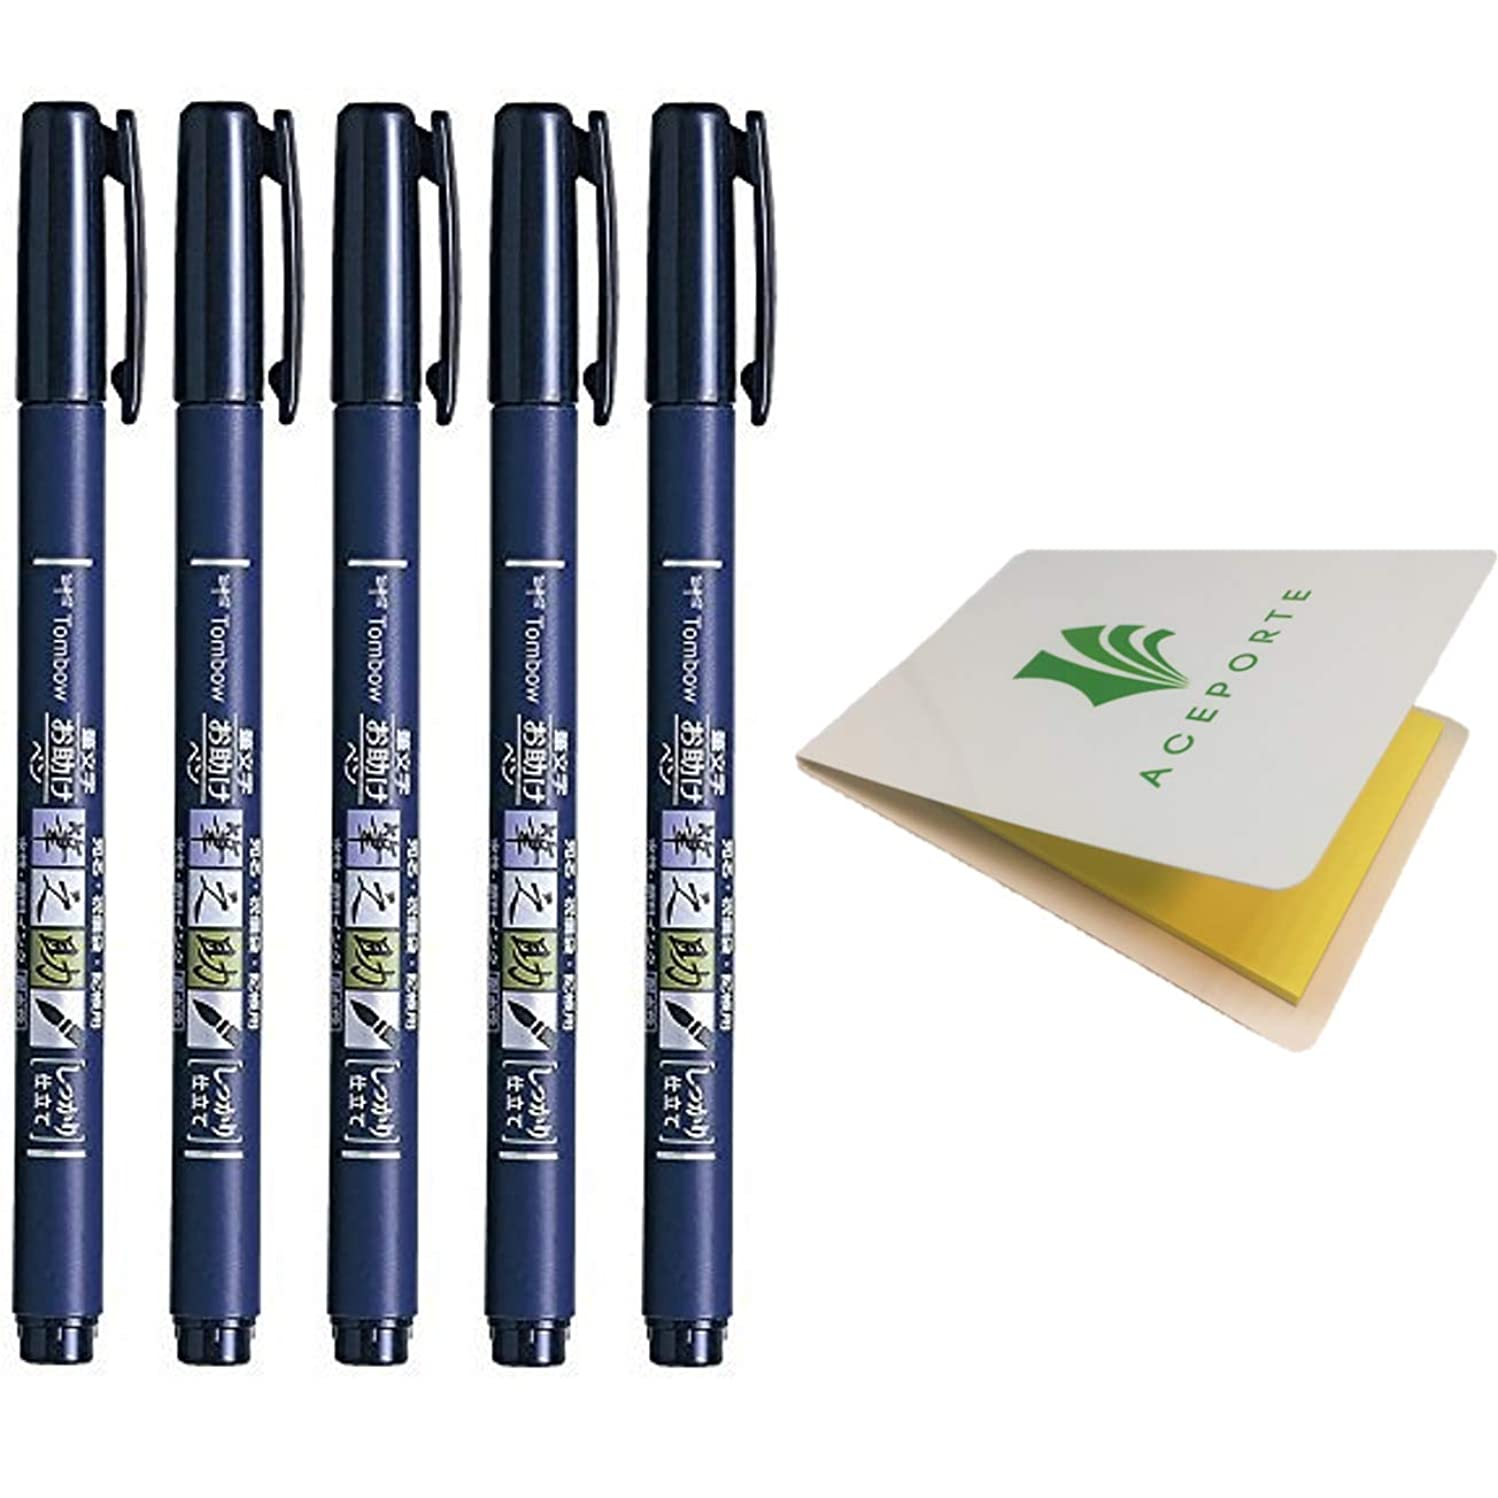 Tombow Fudenosuke Fude Brush Pen Hard (GCD-111) x5 Set, with Original Sticky Notes – Great for Calligraphy, Art Drawings, Illustration, Manga